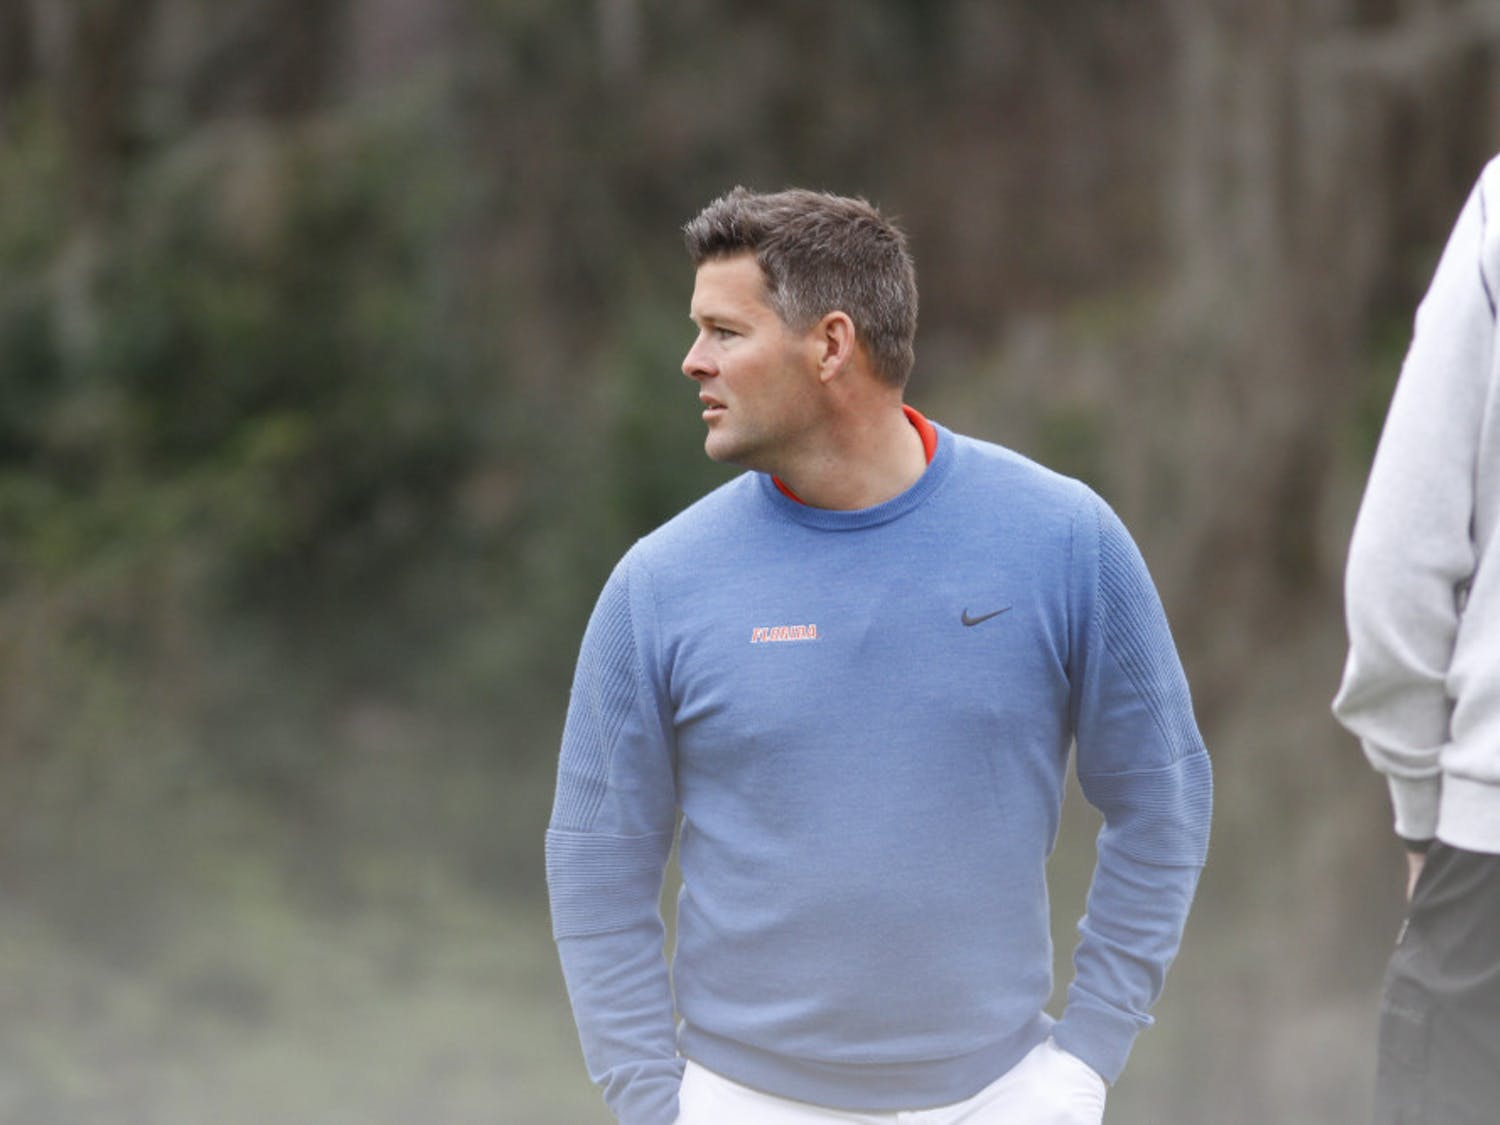 Florida men's golf coach JC Deacon's squad punched its ticket to the national championship with a Wednesday comeback